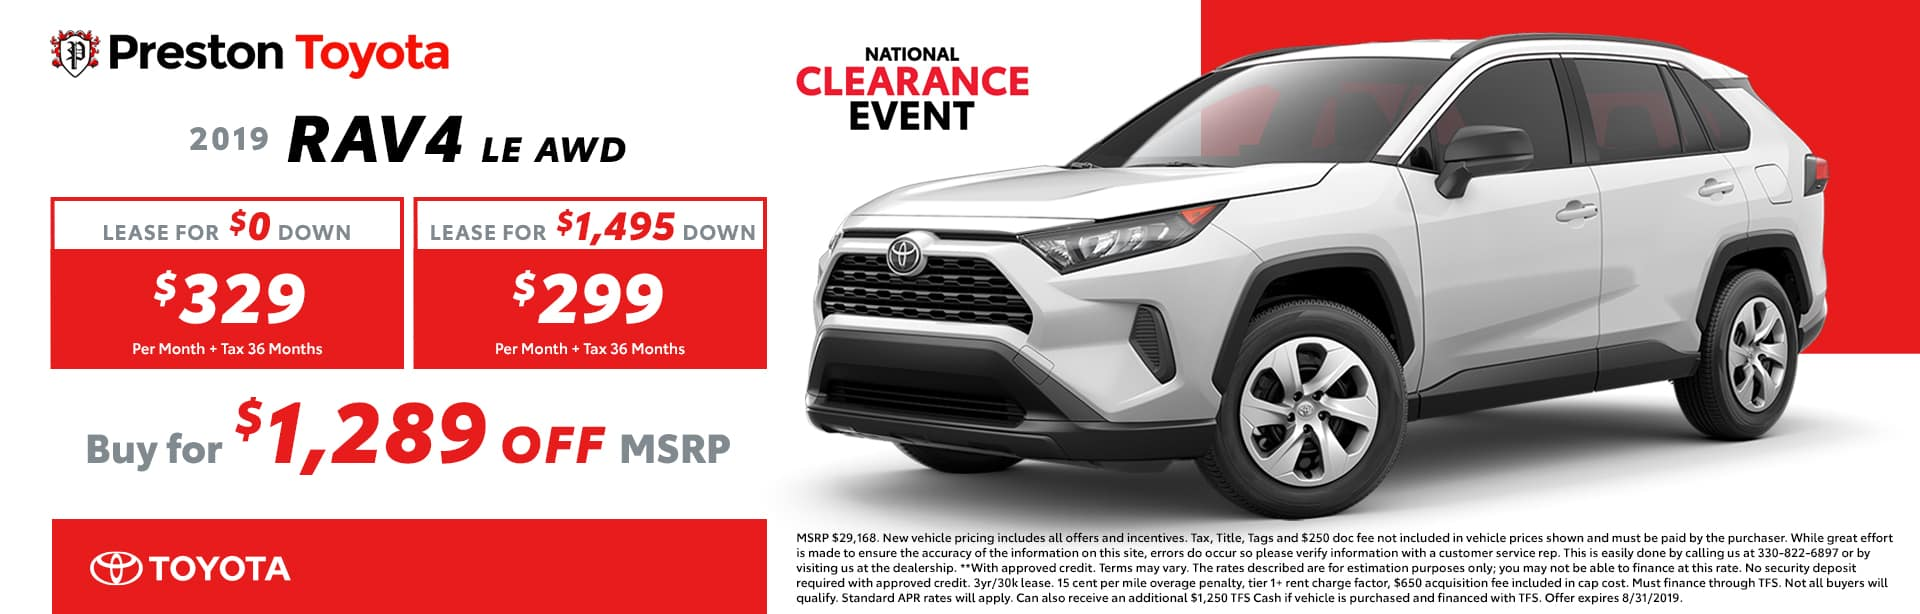 August special on the 2019 RAV4